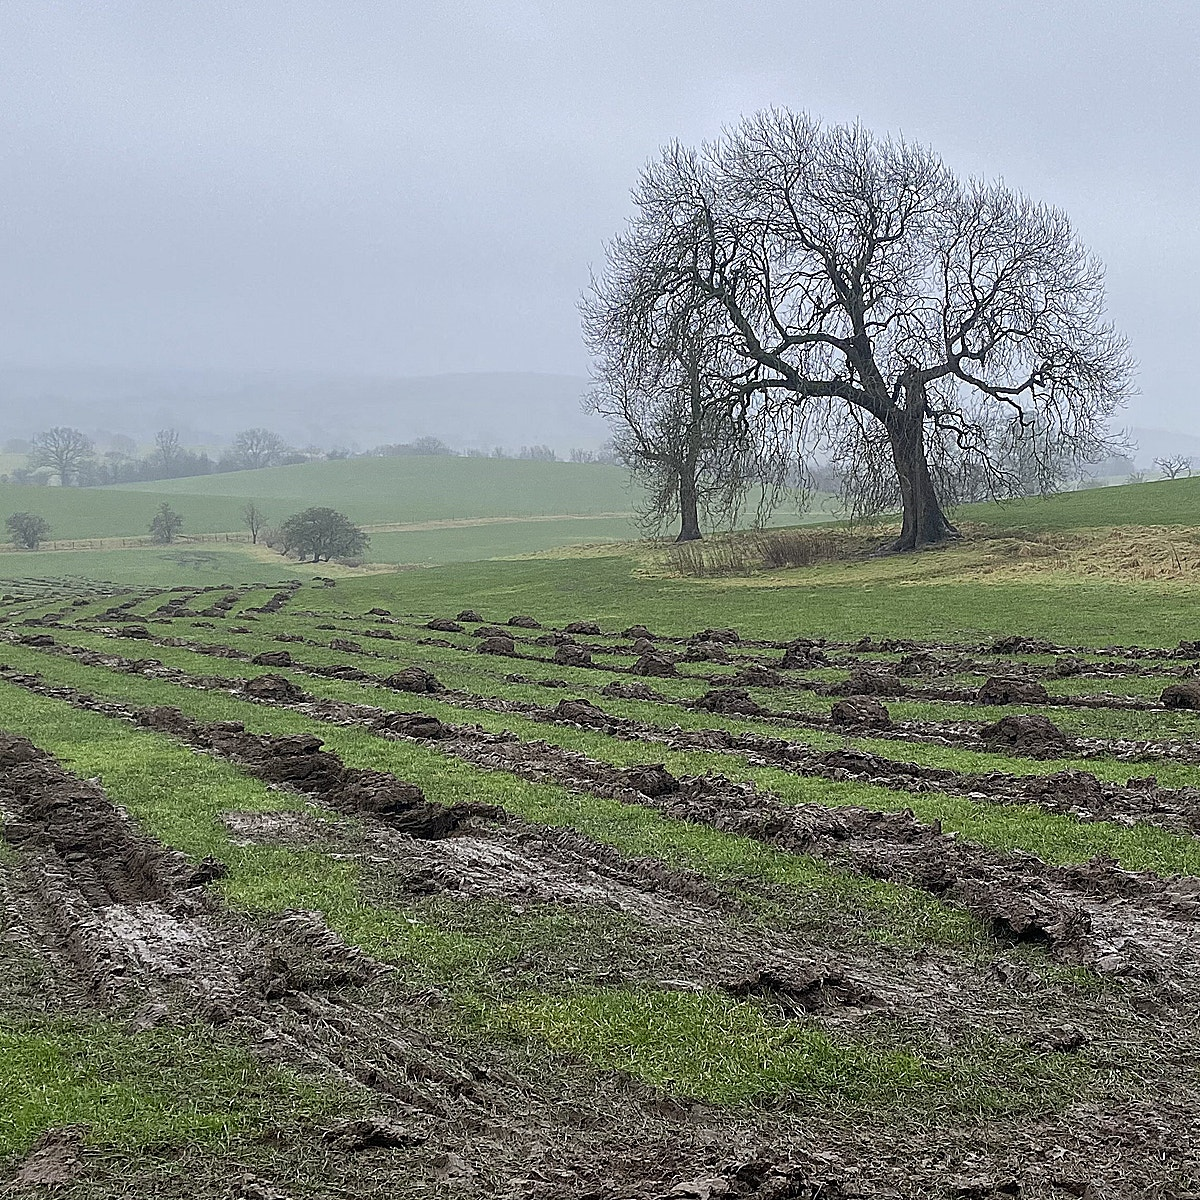 Ground preparation underway for large scale tree planting